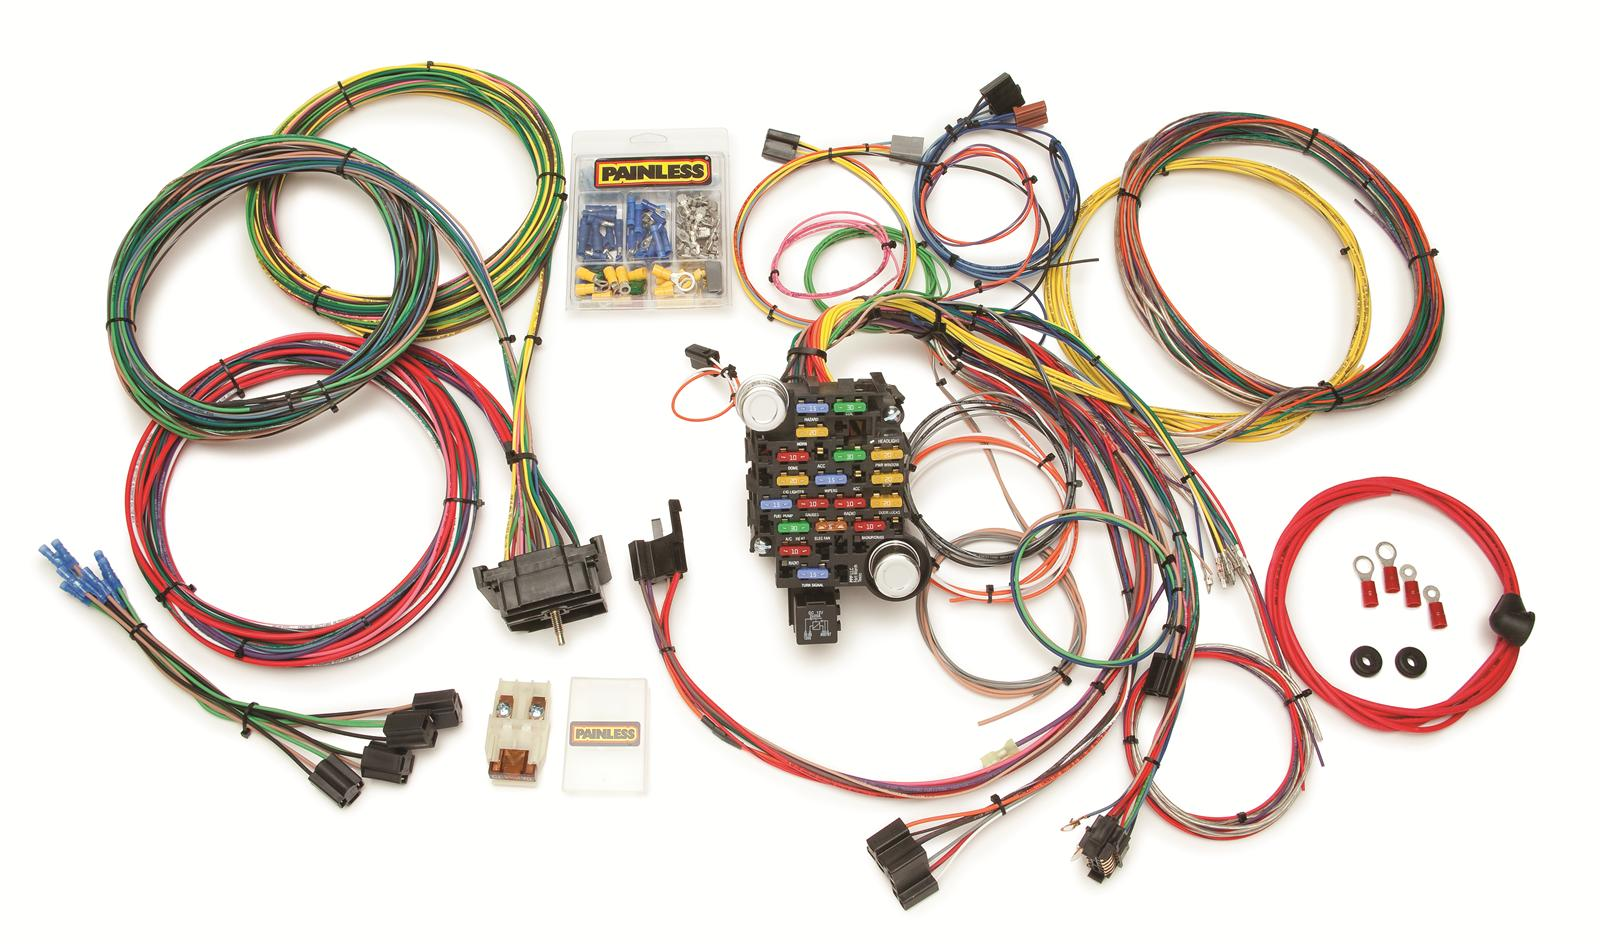 1986 Chevy Truck Wiring Harness Diagram Data 1968 C10 Pickup Painless Performance Gmc Harnesses 10206 Free Shipping 1982